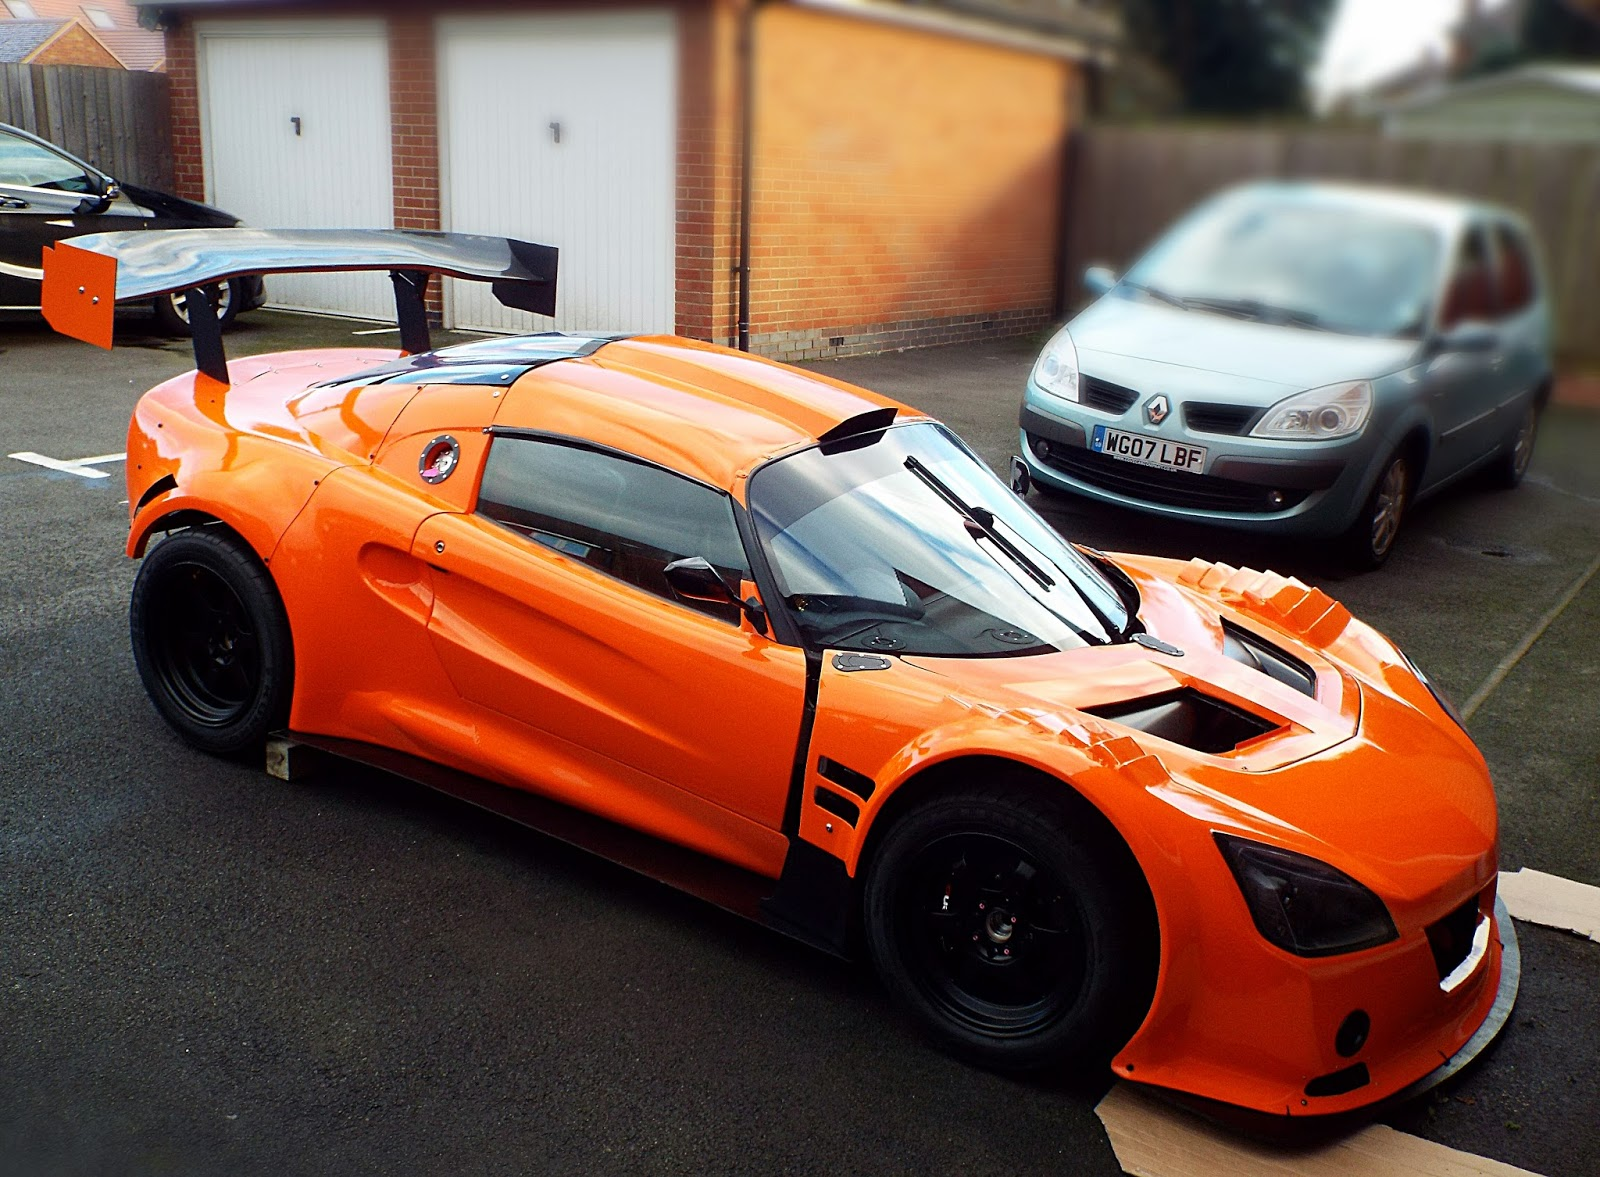 lotus exige s1 800kg 400bhp ferrari v8 engine! mitsubishi International V8 Engine Diagram very, very sadly for sale as a 90% finished project i have built this over the last 2 years and have put my heart and soul and every spare penny into it